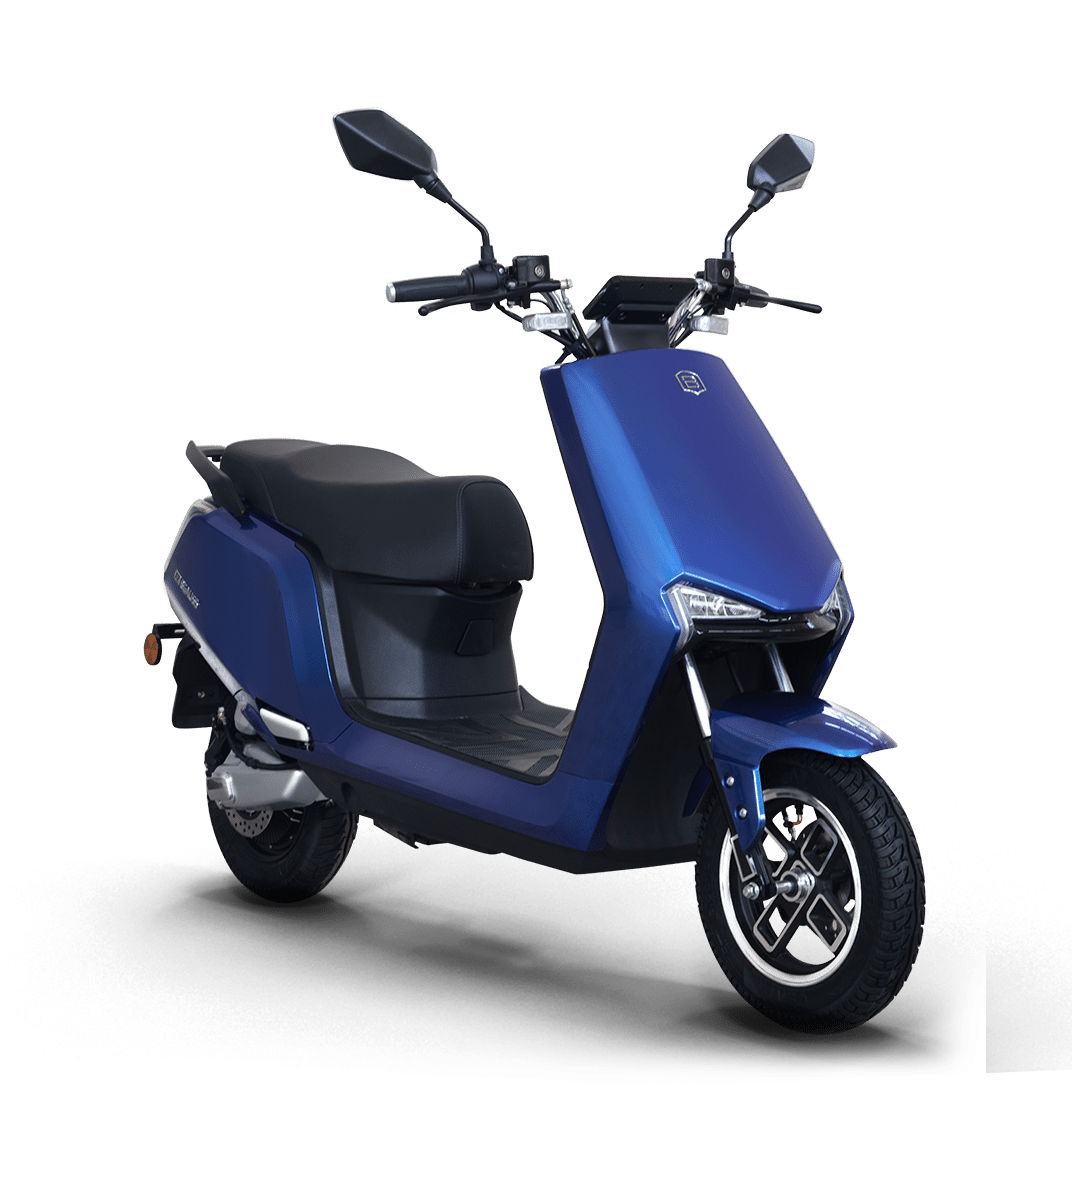 A2_blue electric scooty in india